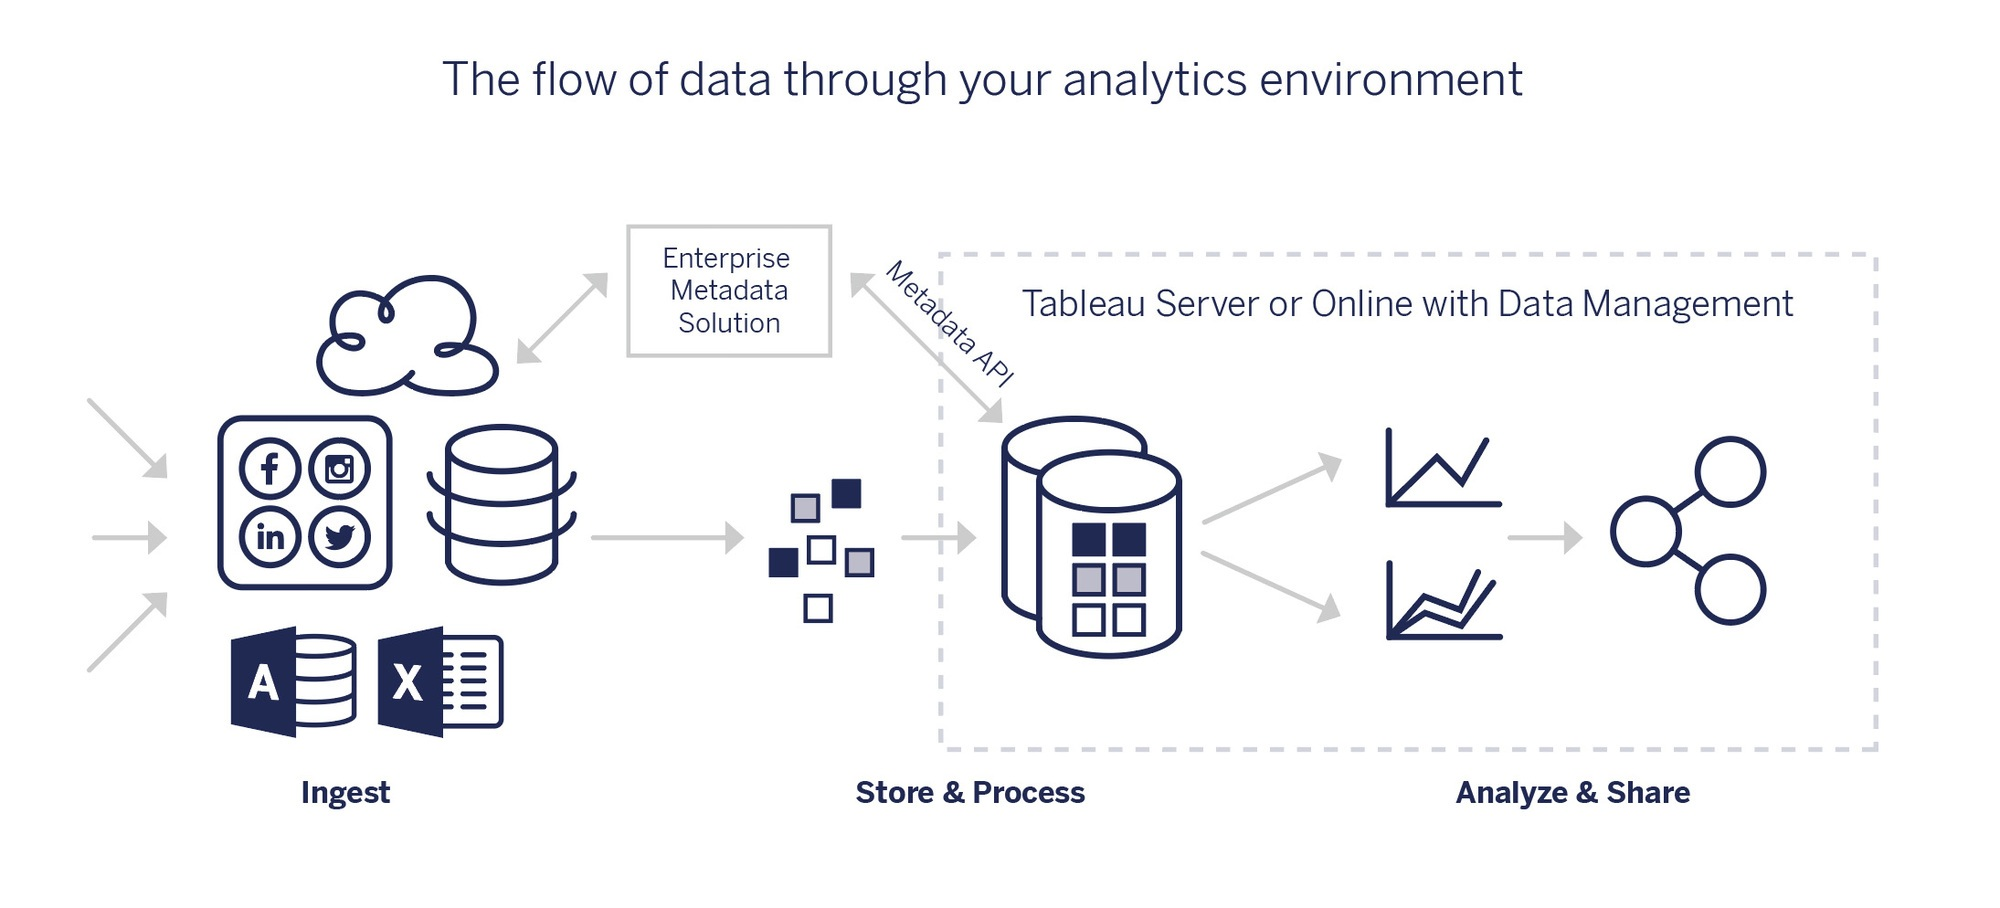 A diagram showing data moving through ingestion, preparation and storage, and analysis and sharing within the Tableau analytics platform